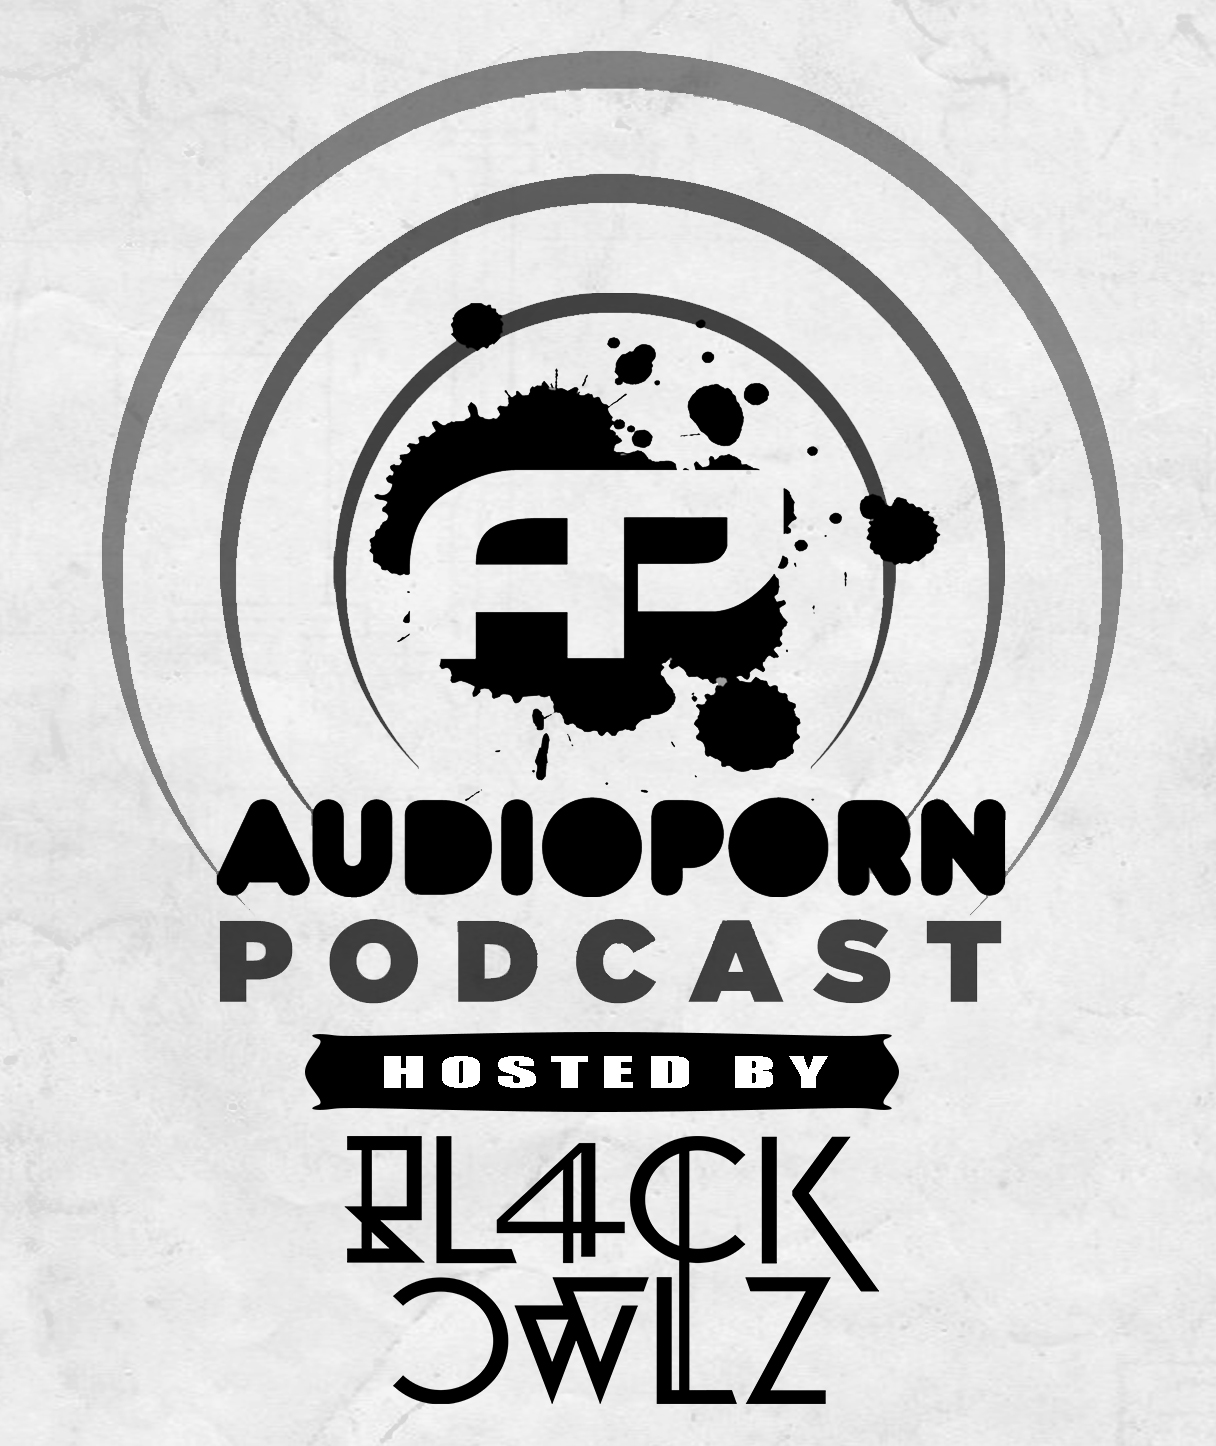 AudioPorn Podcast #14 - Hosted by Bl4ck Owlz